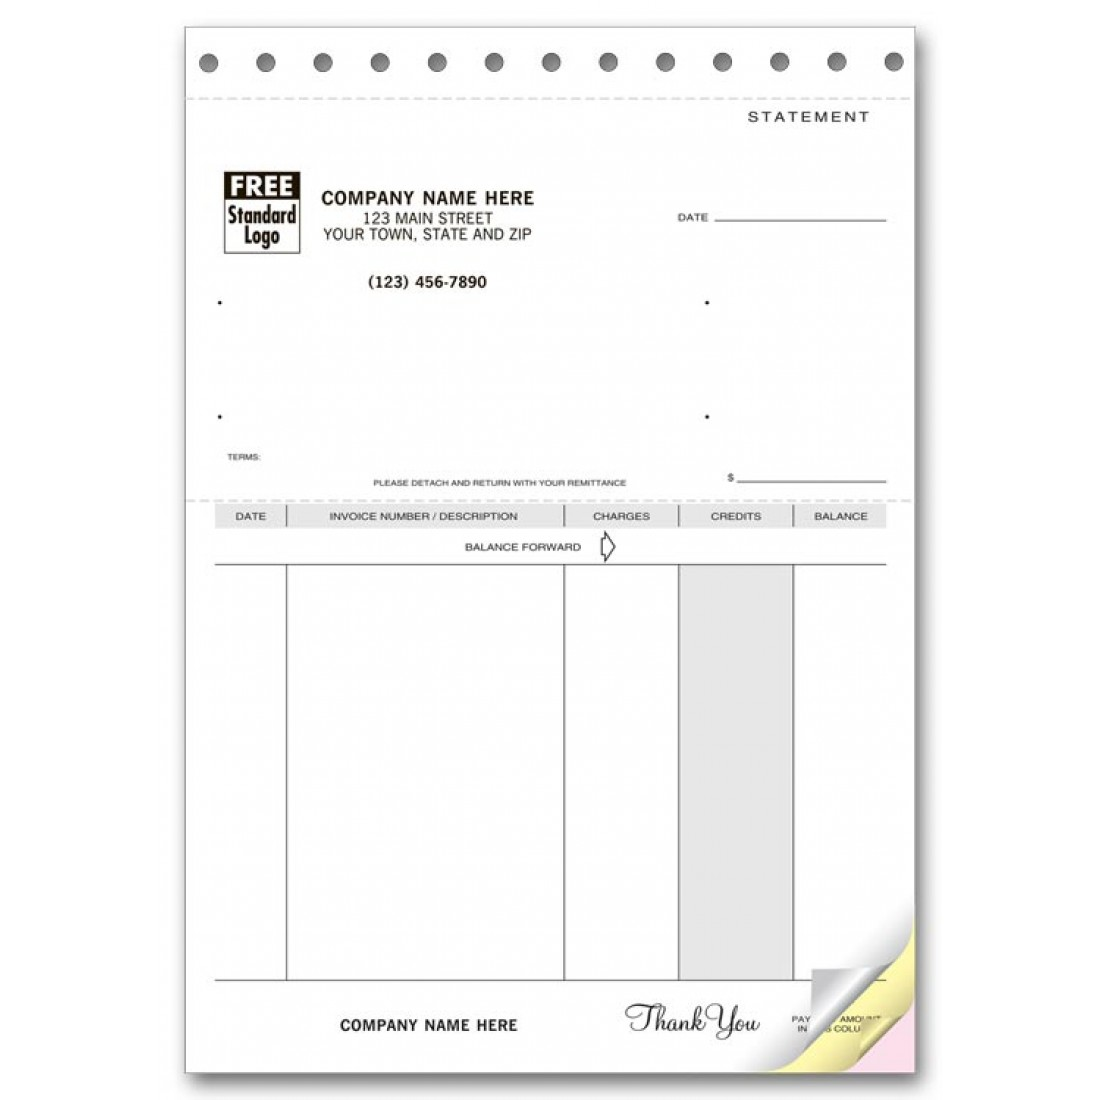 Compact Unlined Statement Forms